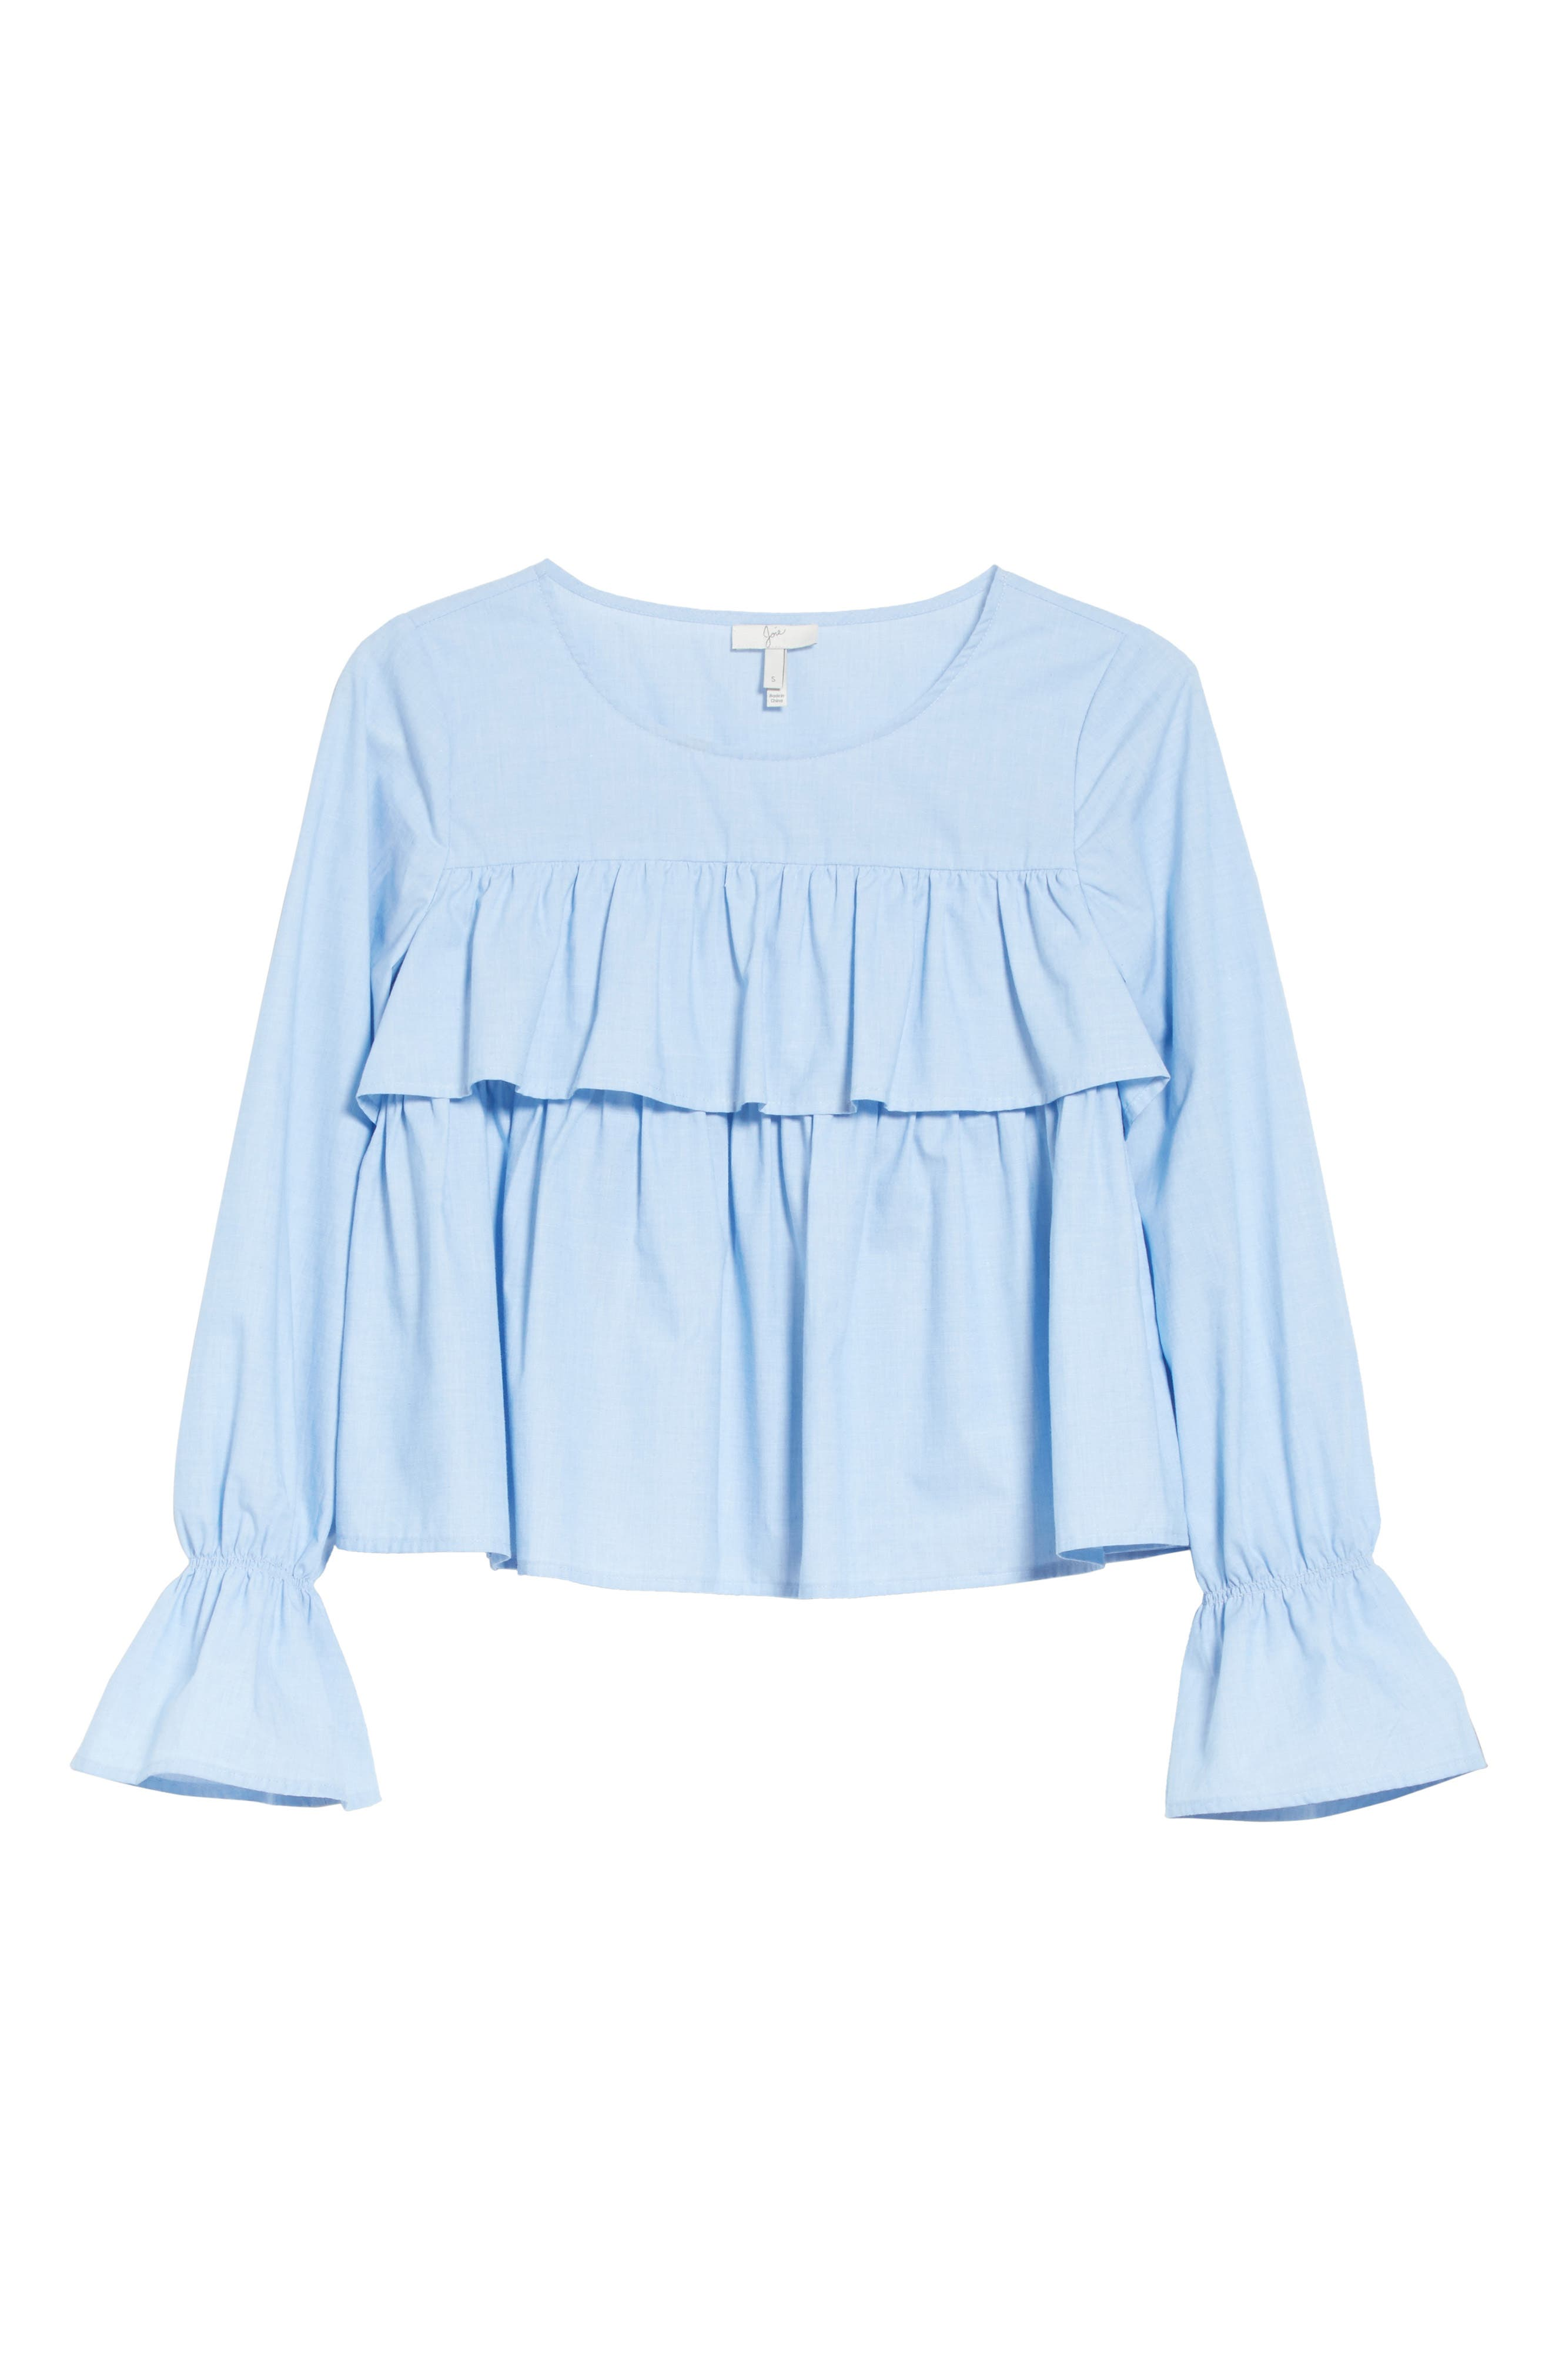 Adotte Cotton Top,                             Alternate thumbnail 6, color,                             Maritime Chambray